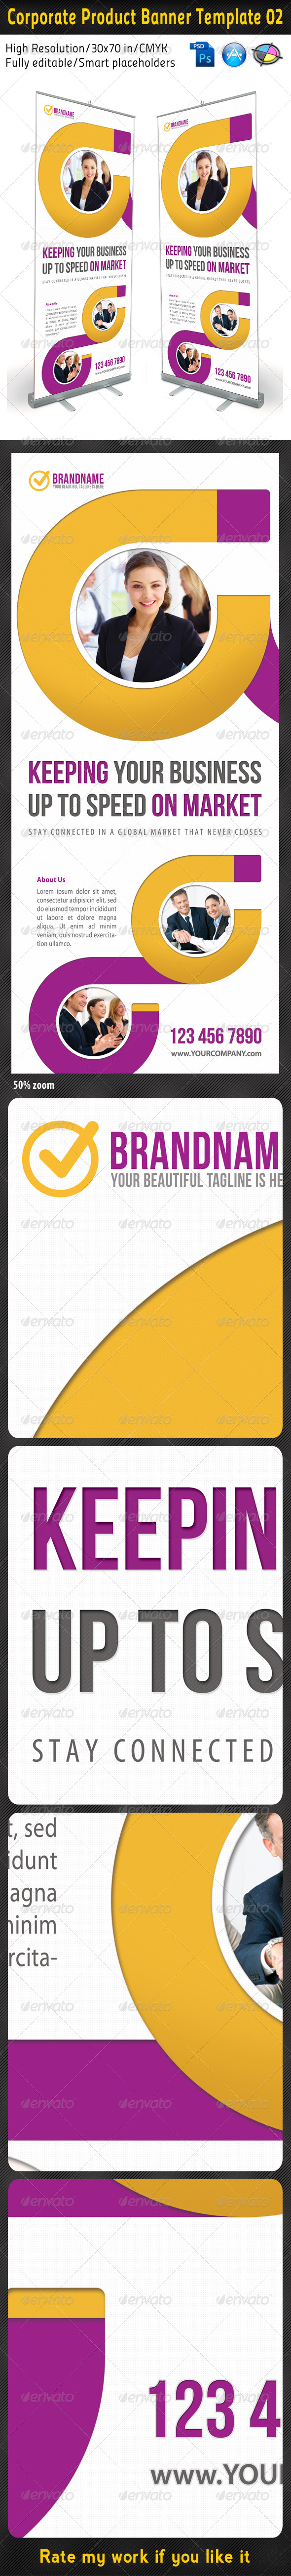 GraphicRiver Corporate Product Banner Template 02 5402358